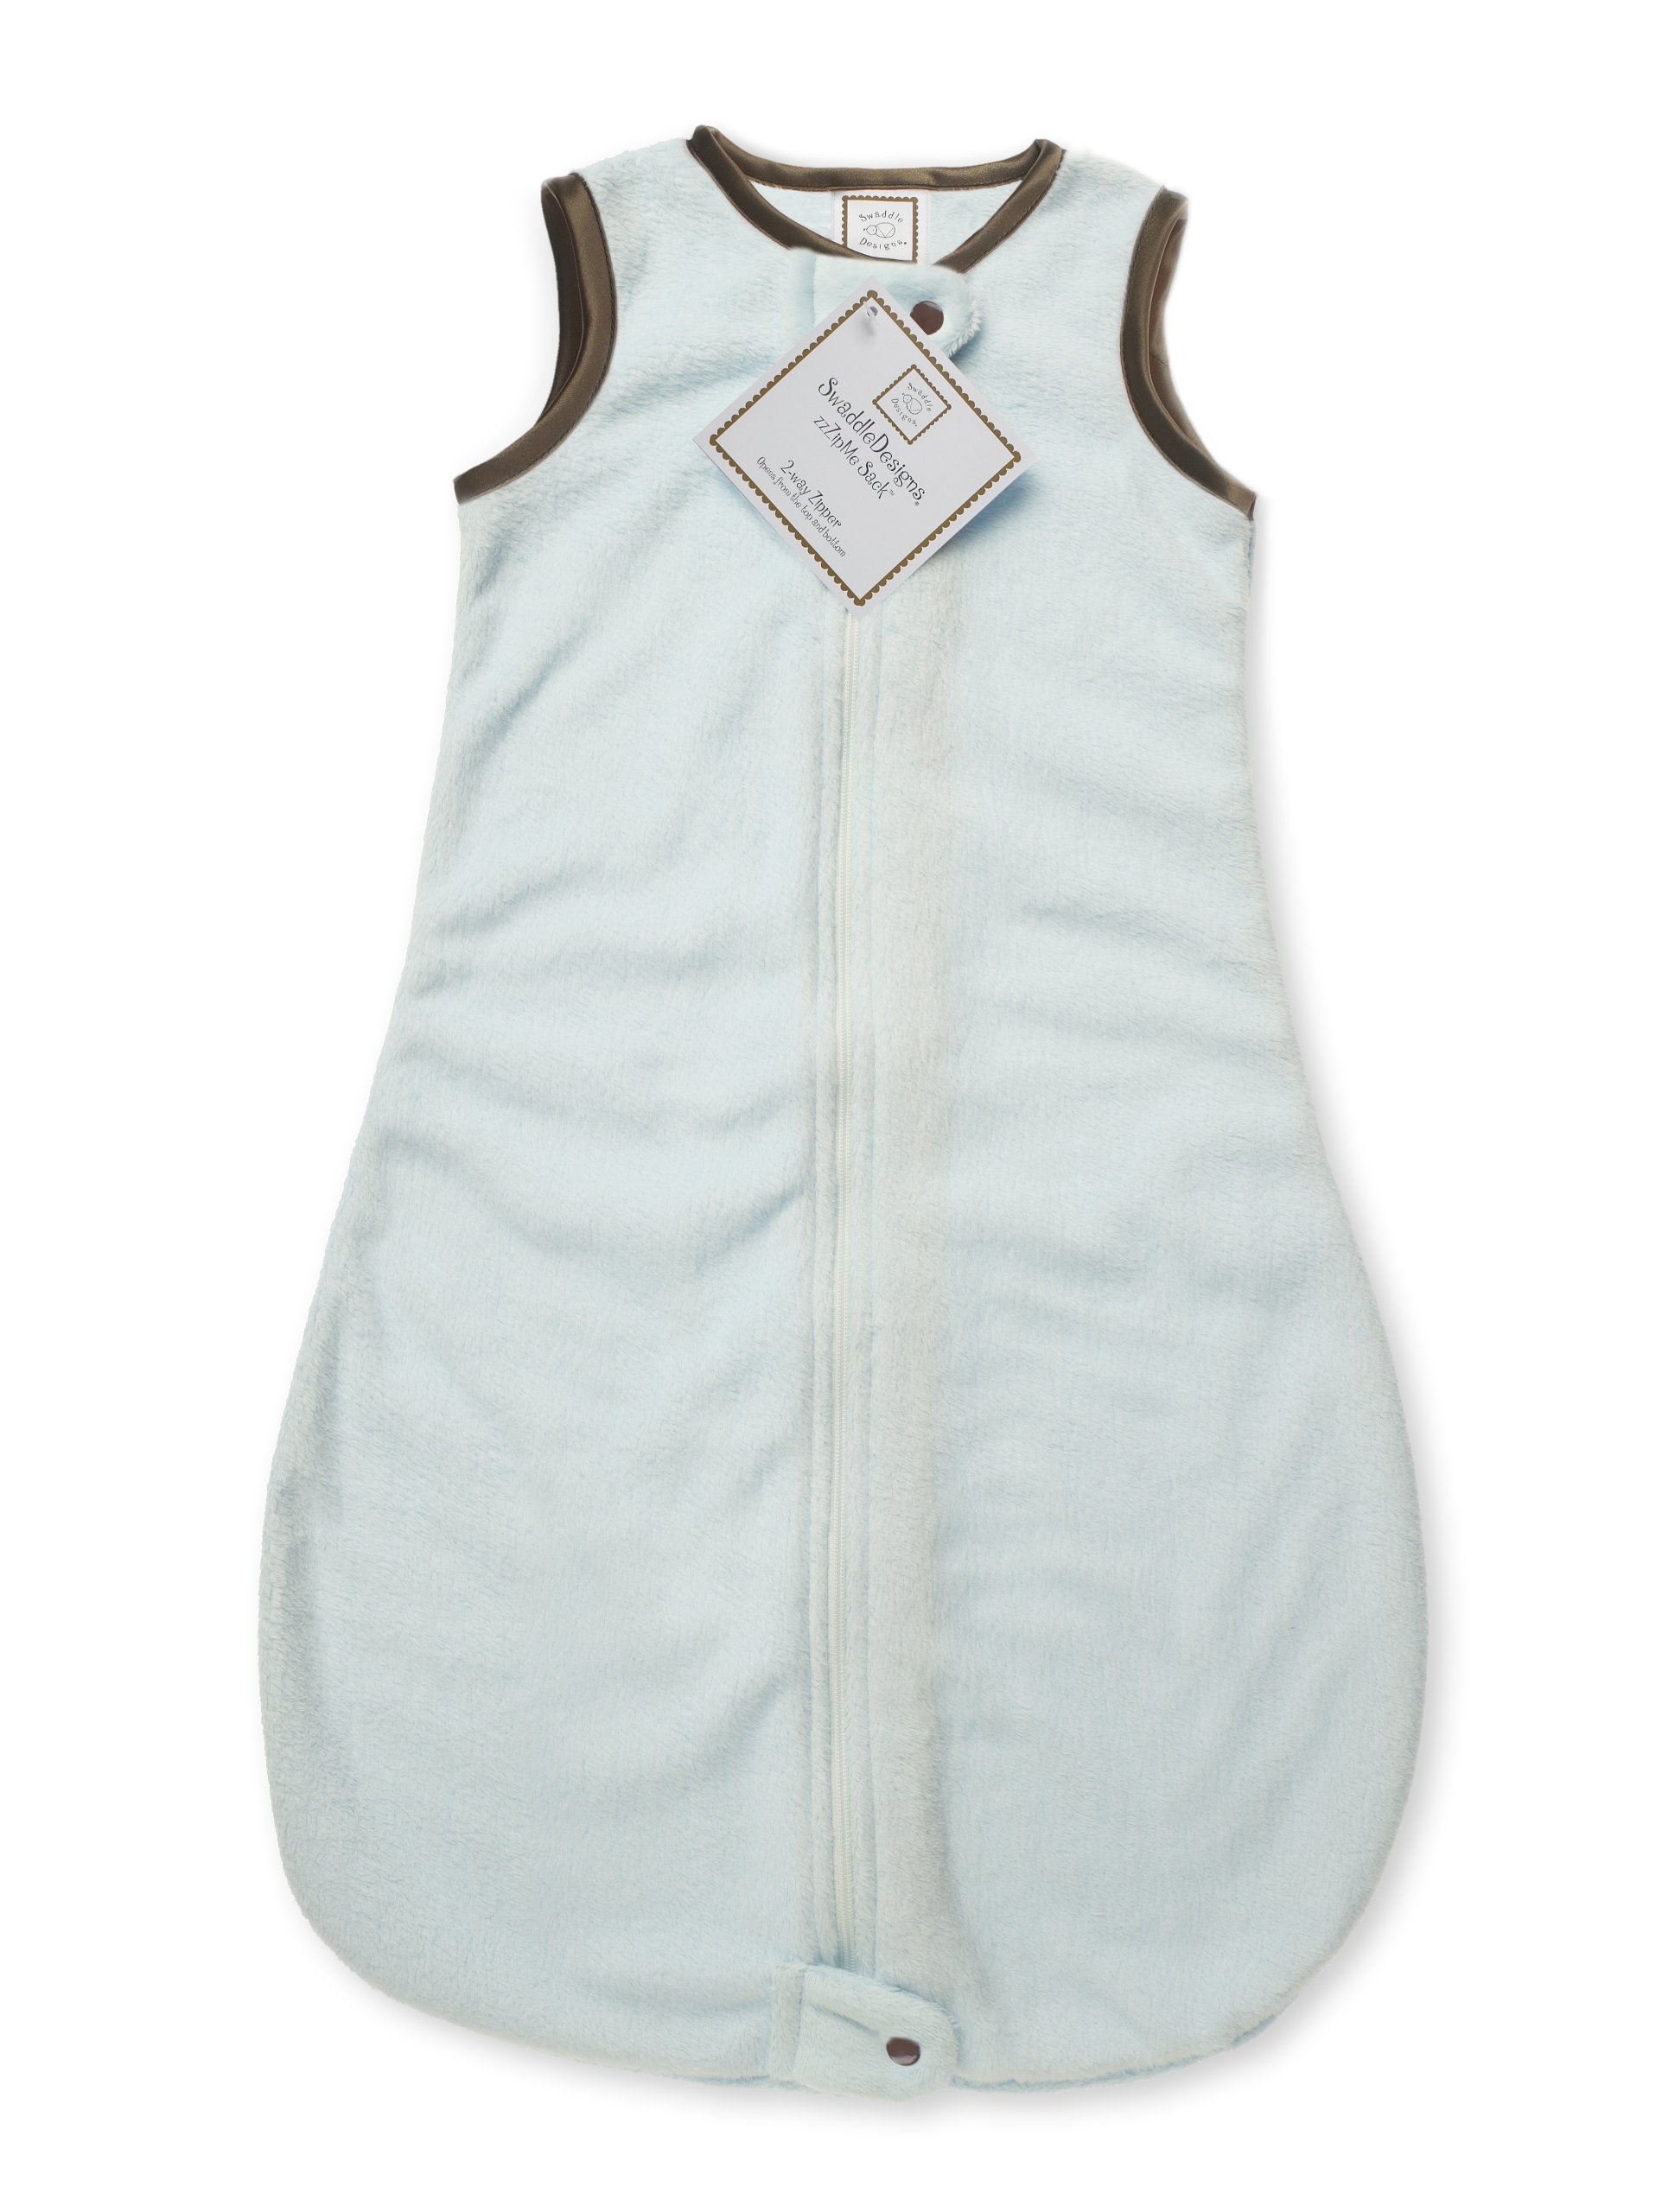 SwaddleDesigns Baby Velvet Sleeping Sack with 2-Way Zipper, Pastel Blue with Mocha Trim, 0-6MO